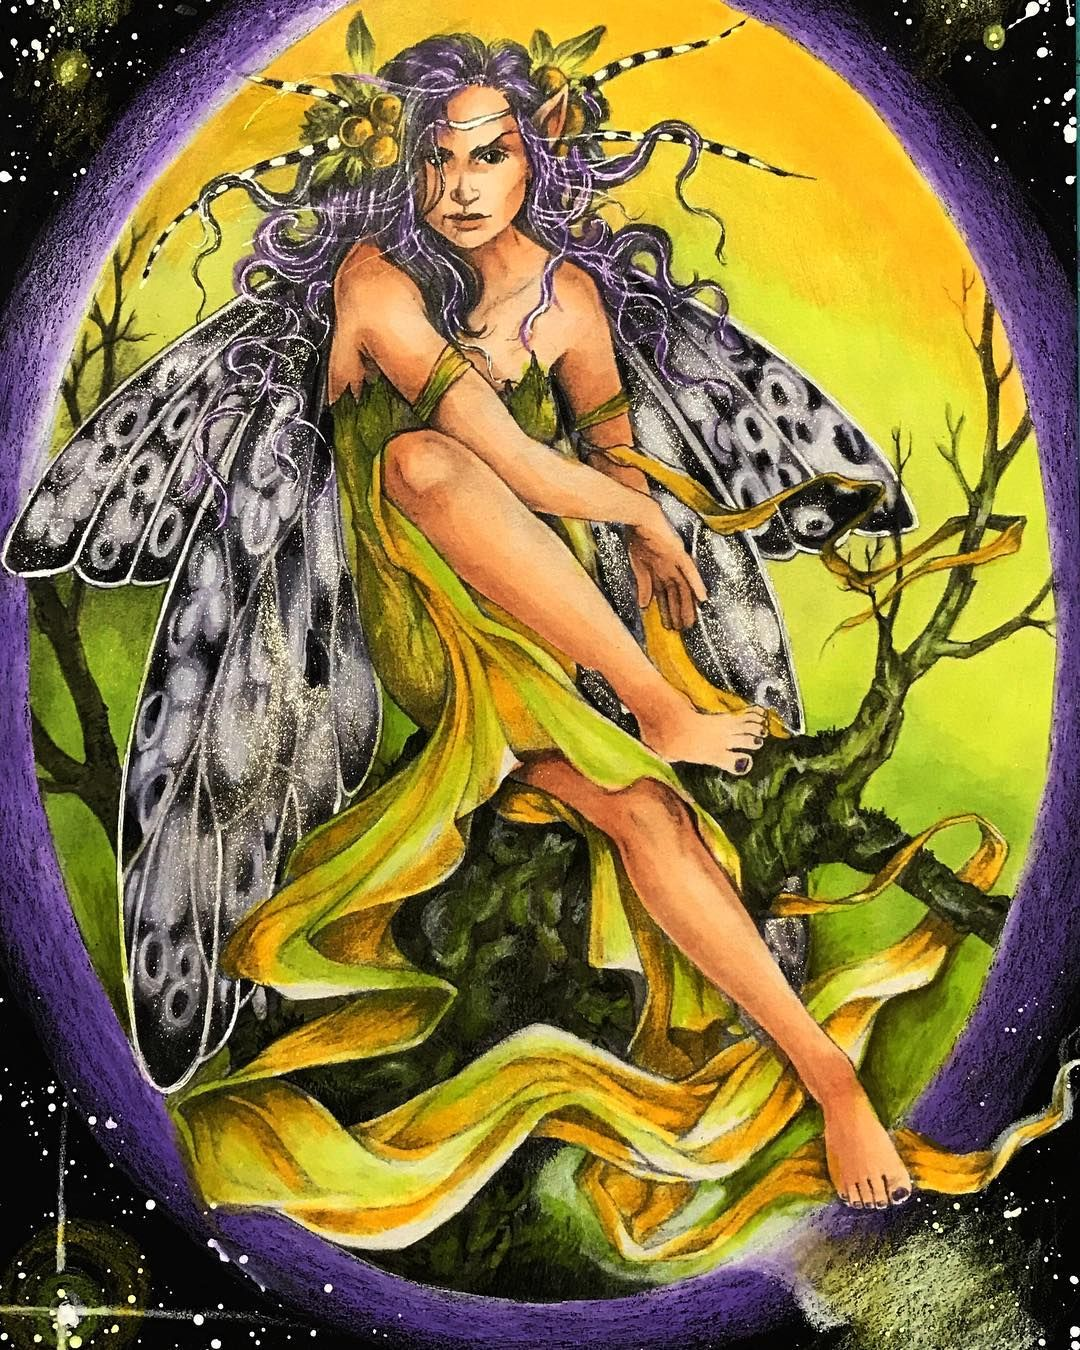 Coloring in #Fairy and #Fantasy Art by Linda Ravenscroft #Colorbook ...